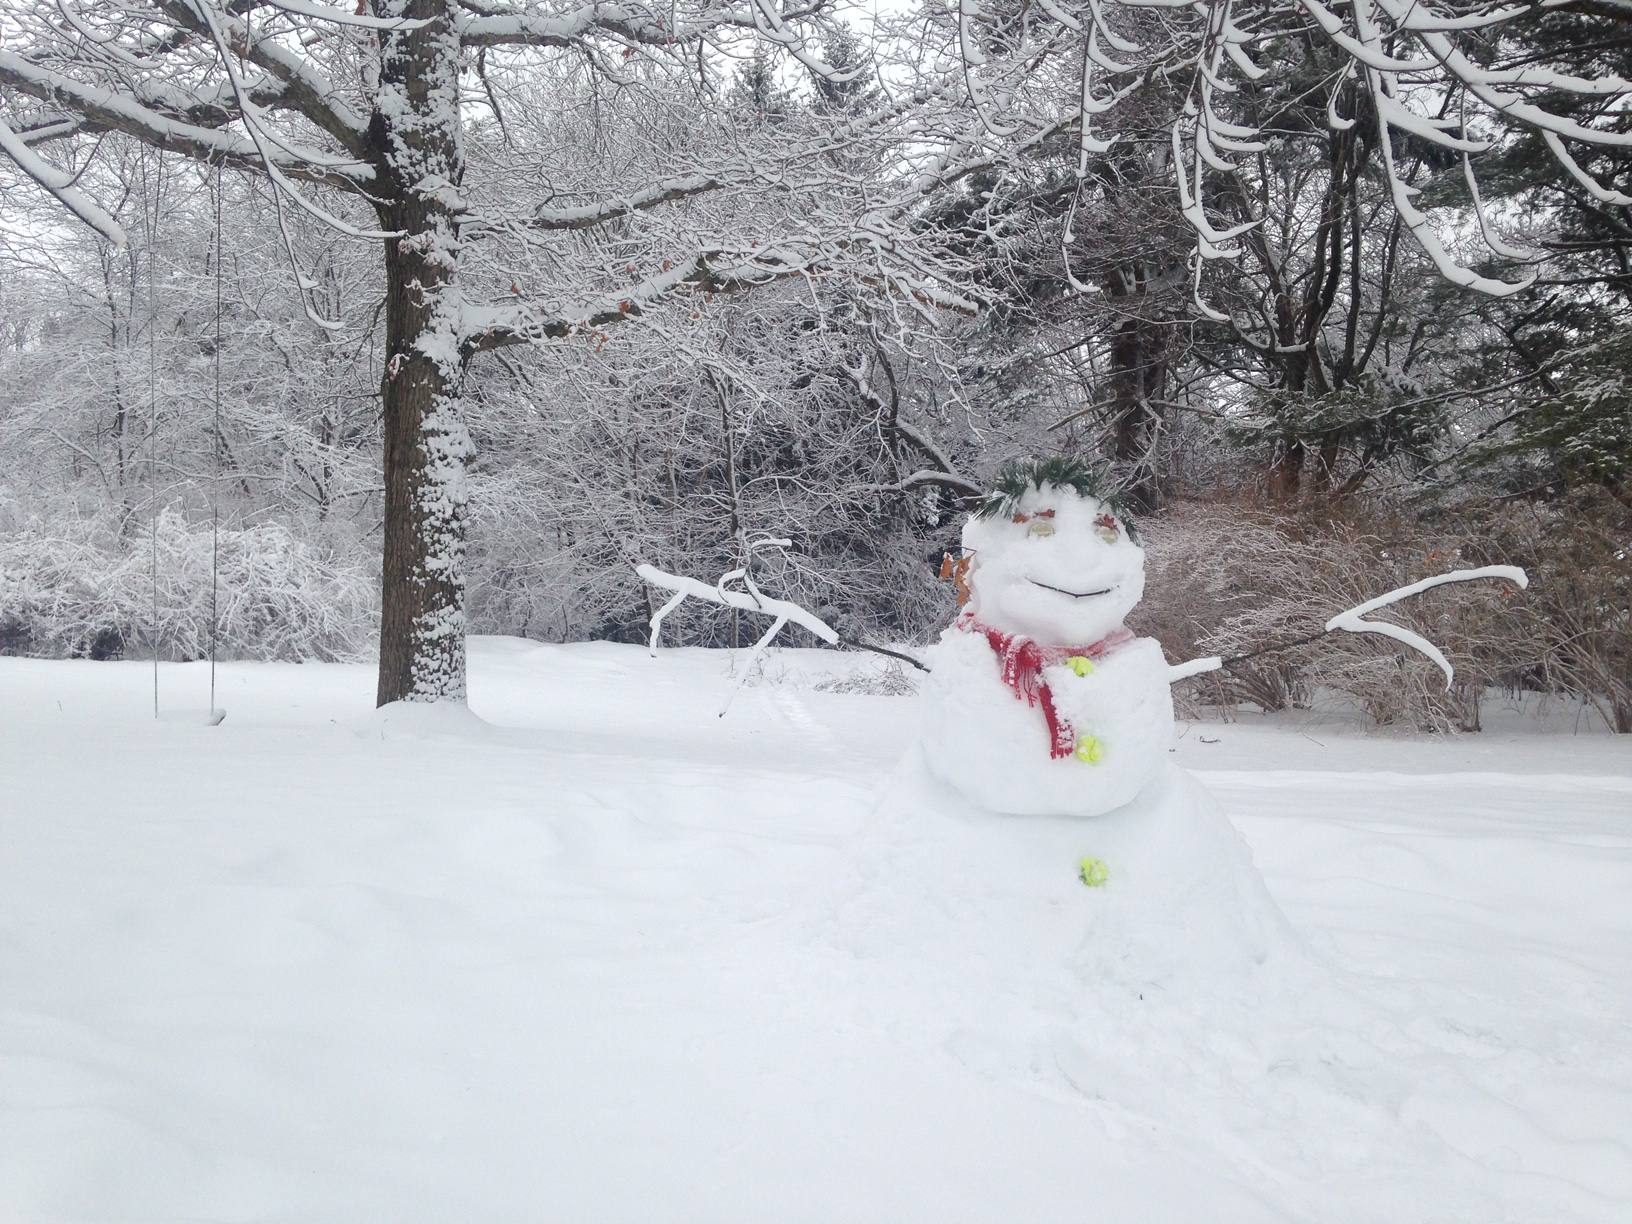 Snowman in Andover, Mass. (Ned Rousmaniere)